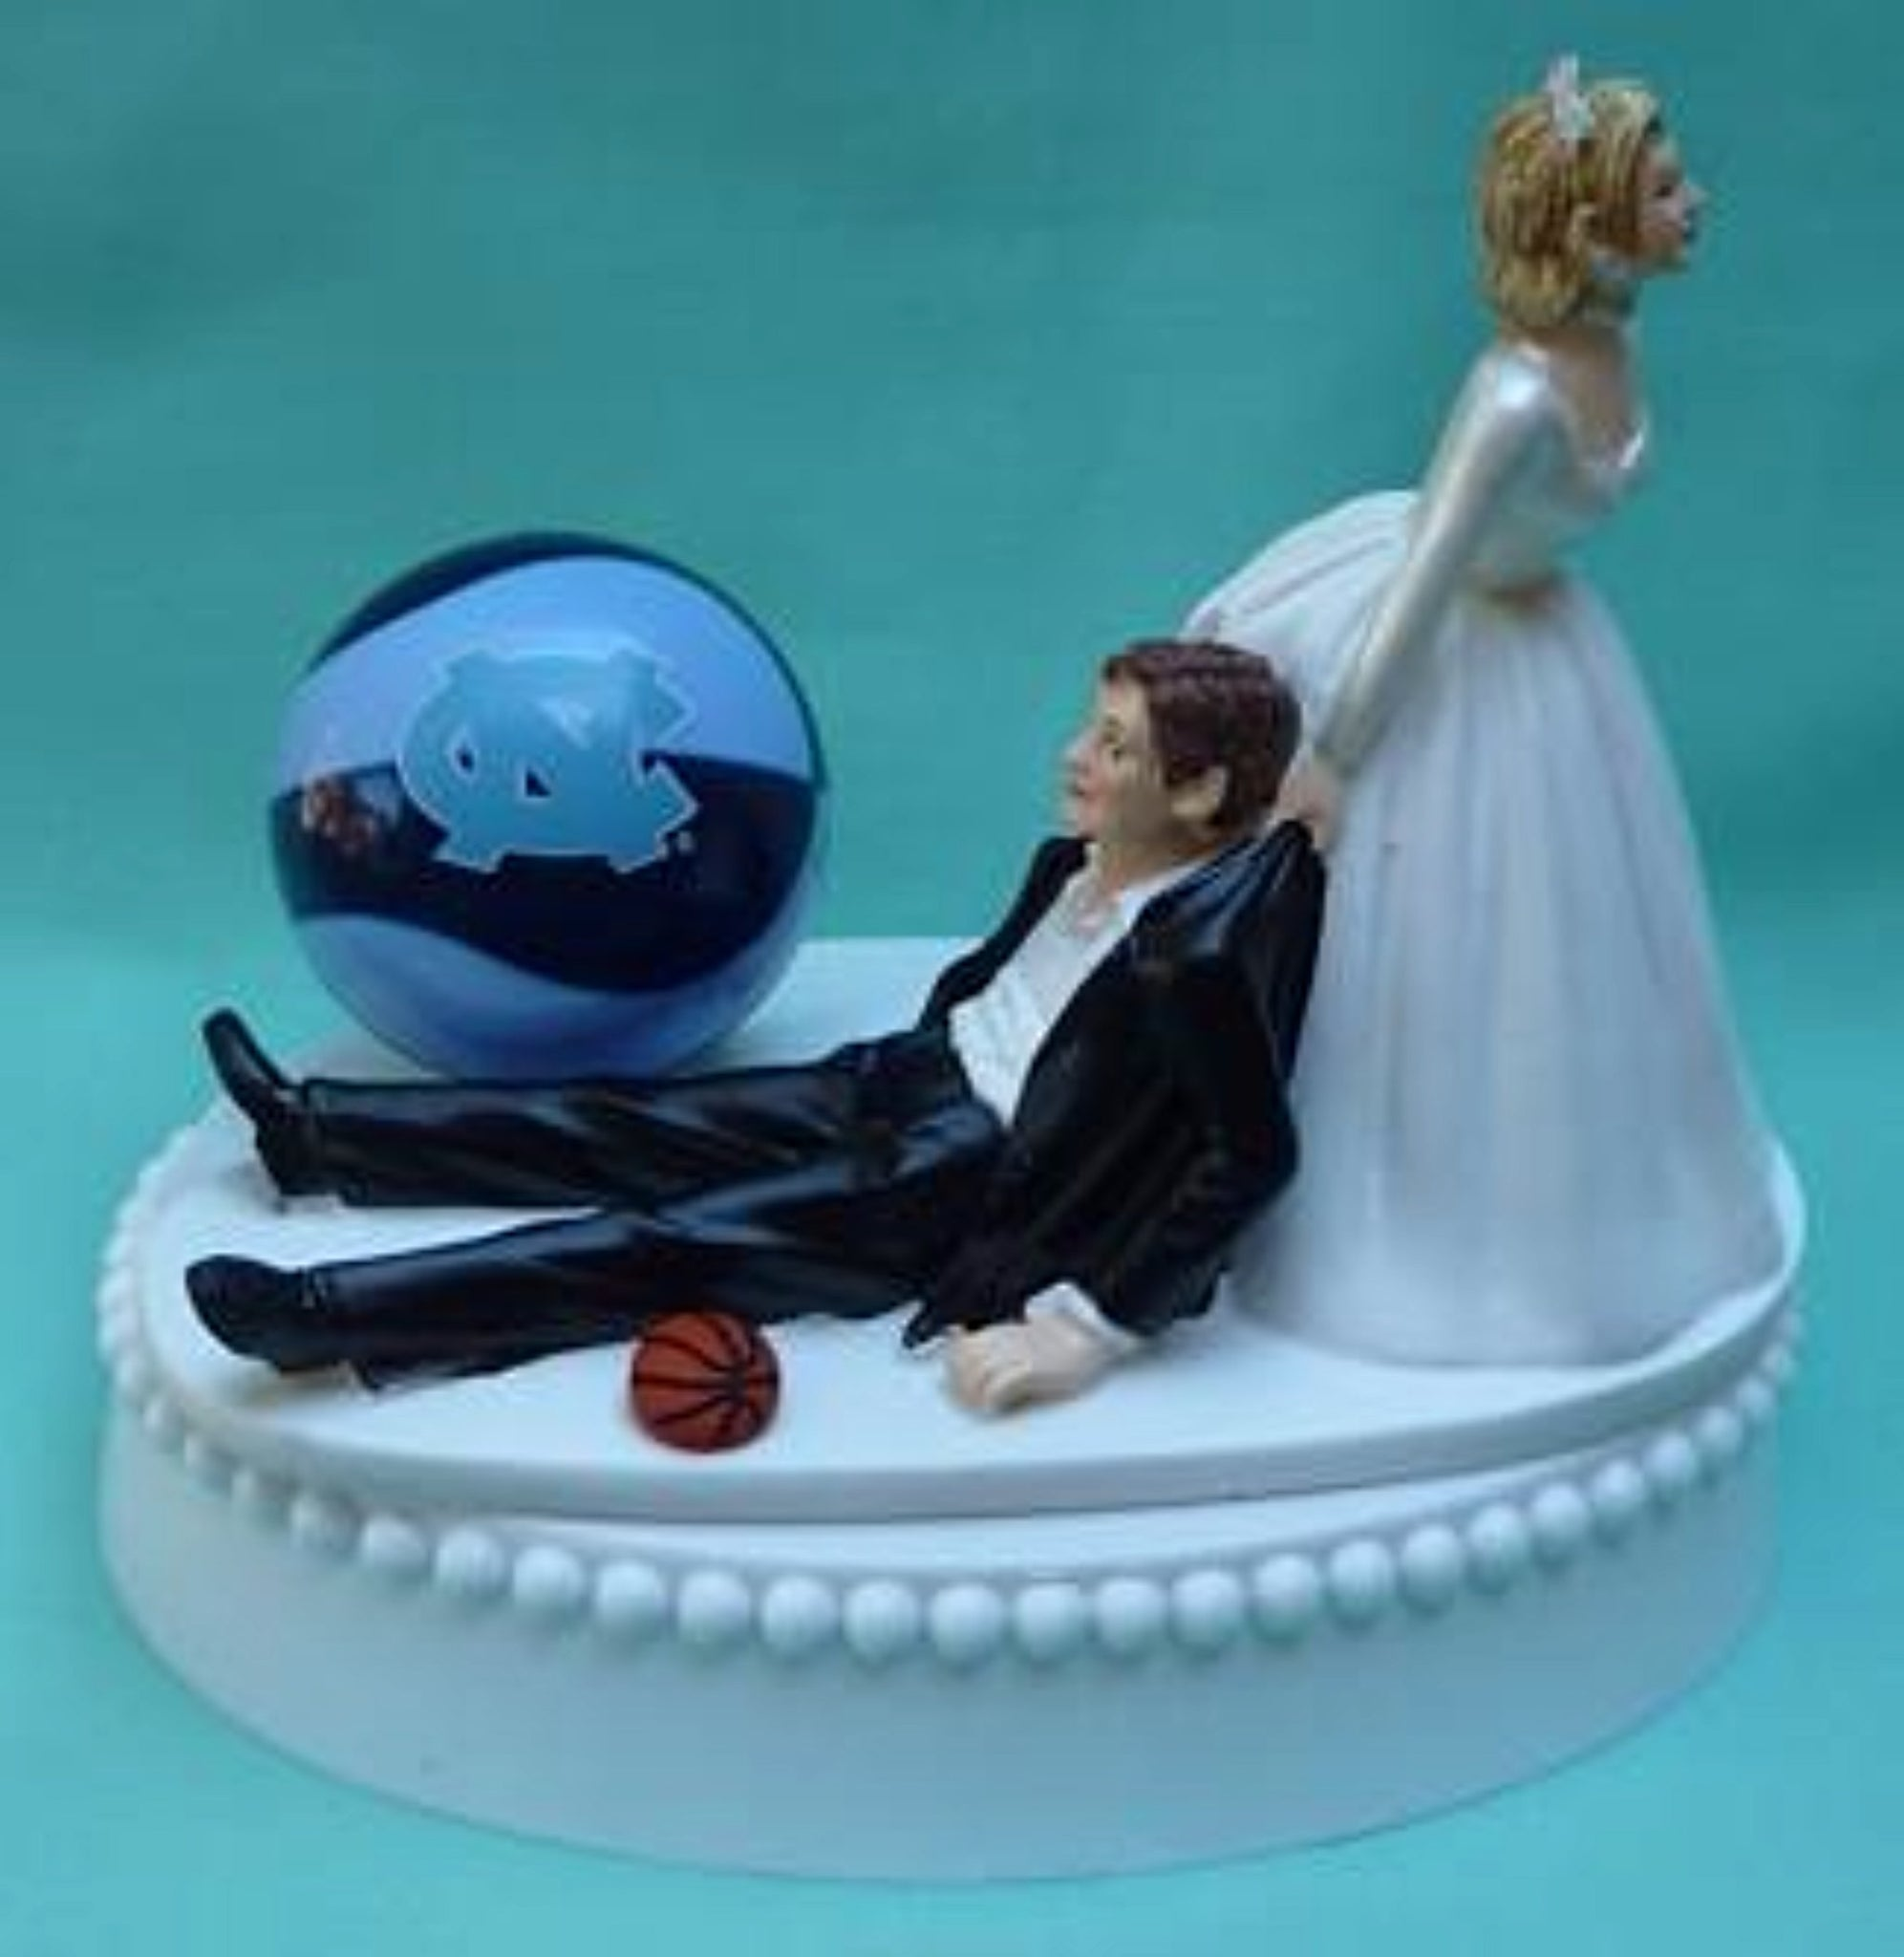 North Carolina basketball wedding cake topper University of UNC Tar Heels sports fans funny bride groom humor Fun Wedding Things